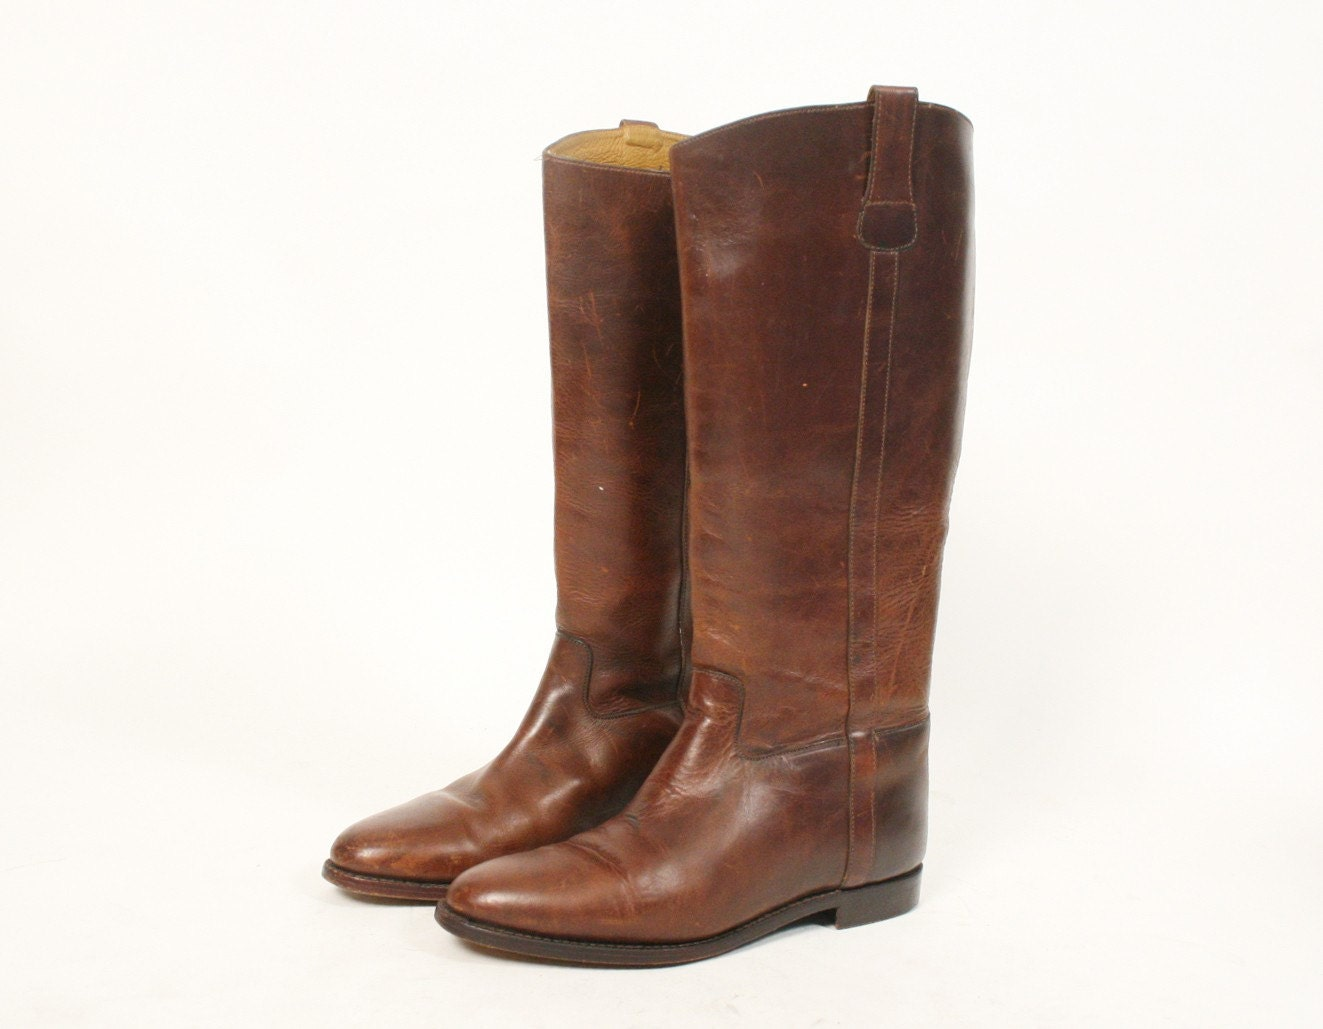 size 9 brown cole haan boots 40